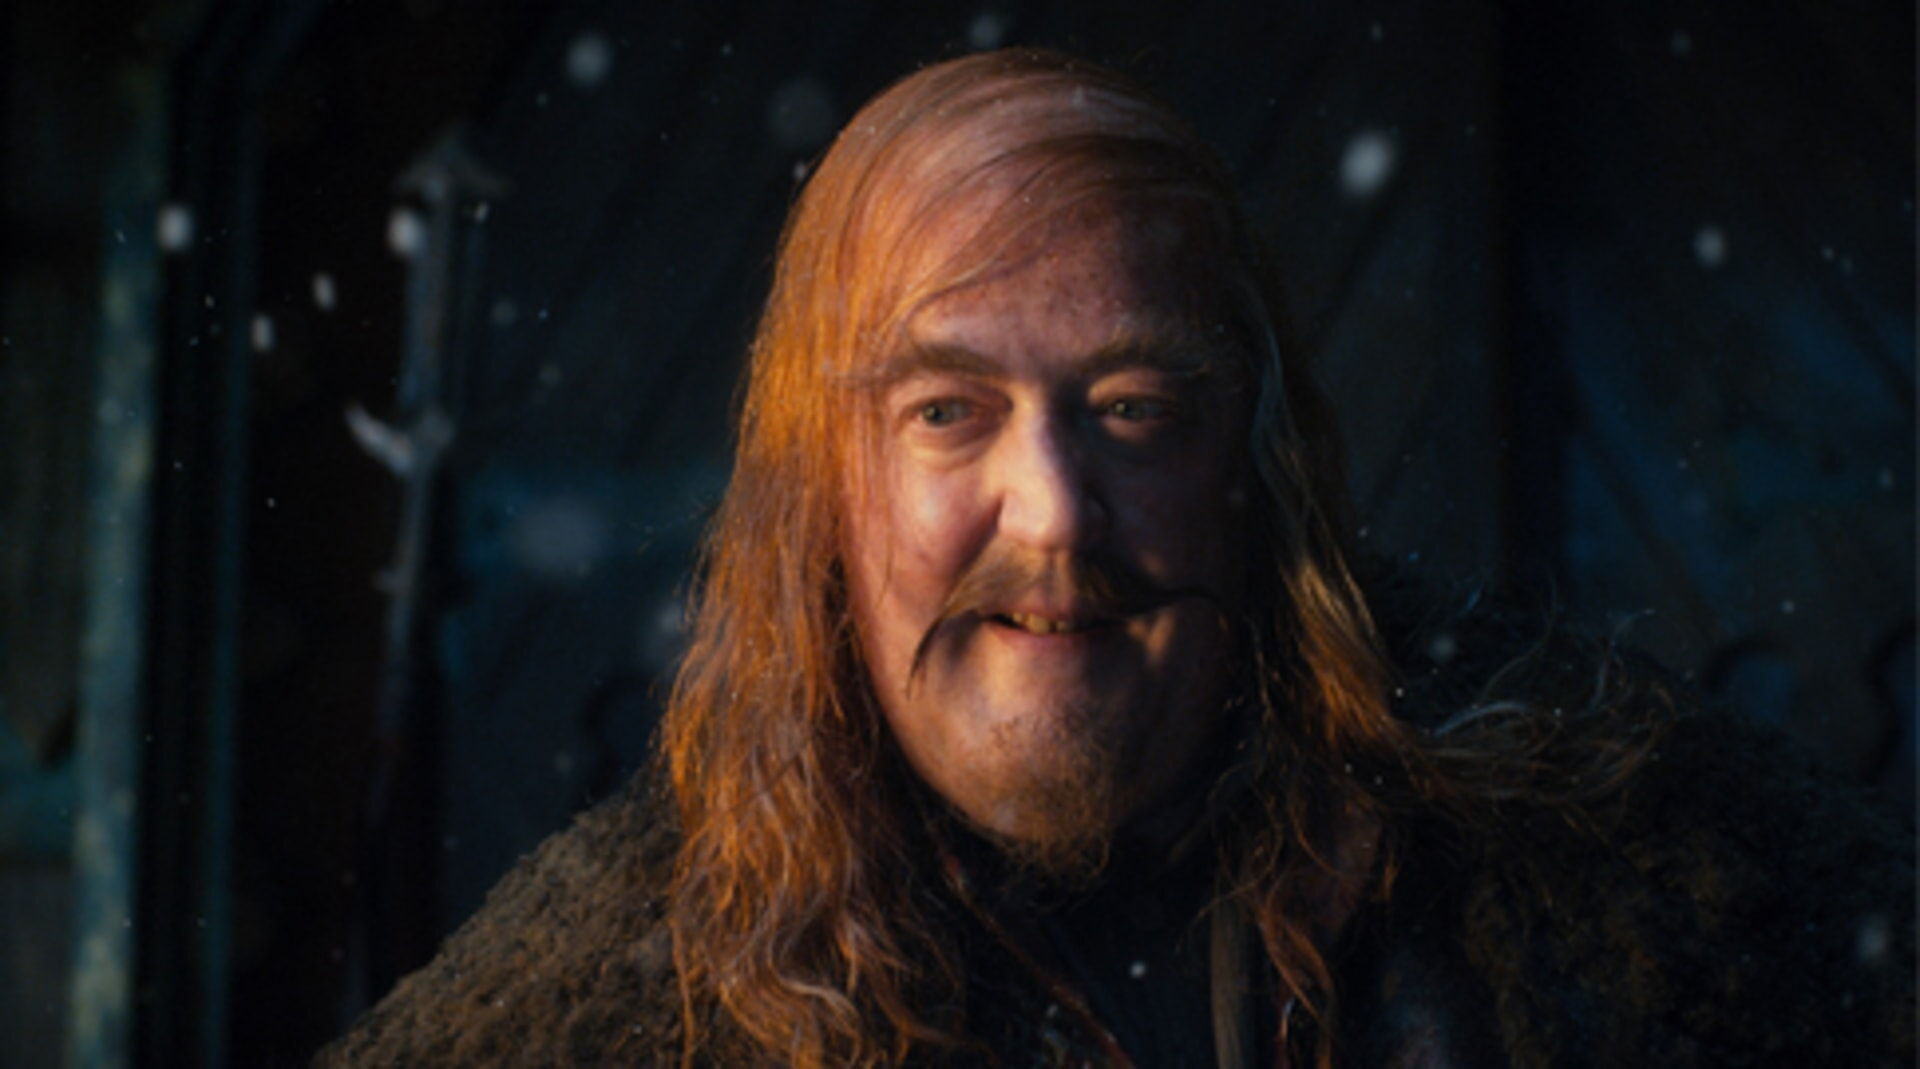 The Hobbit: The Desolation of Smaug - Image 25